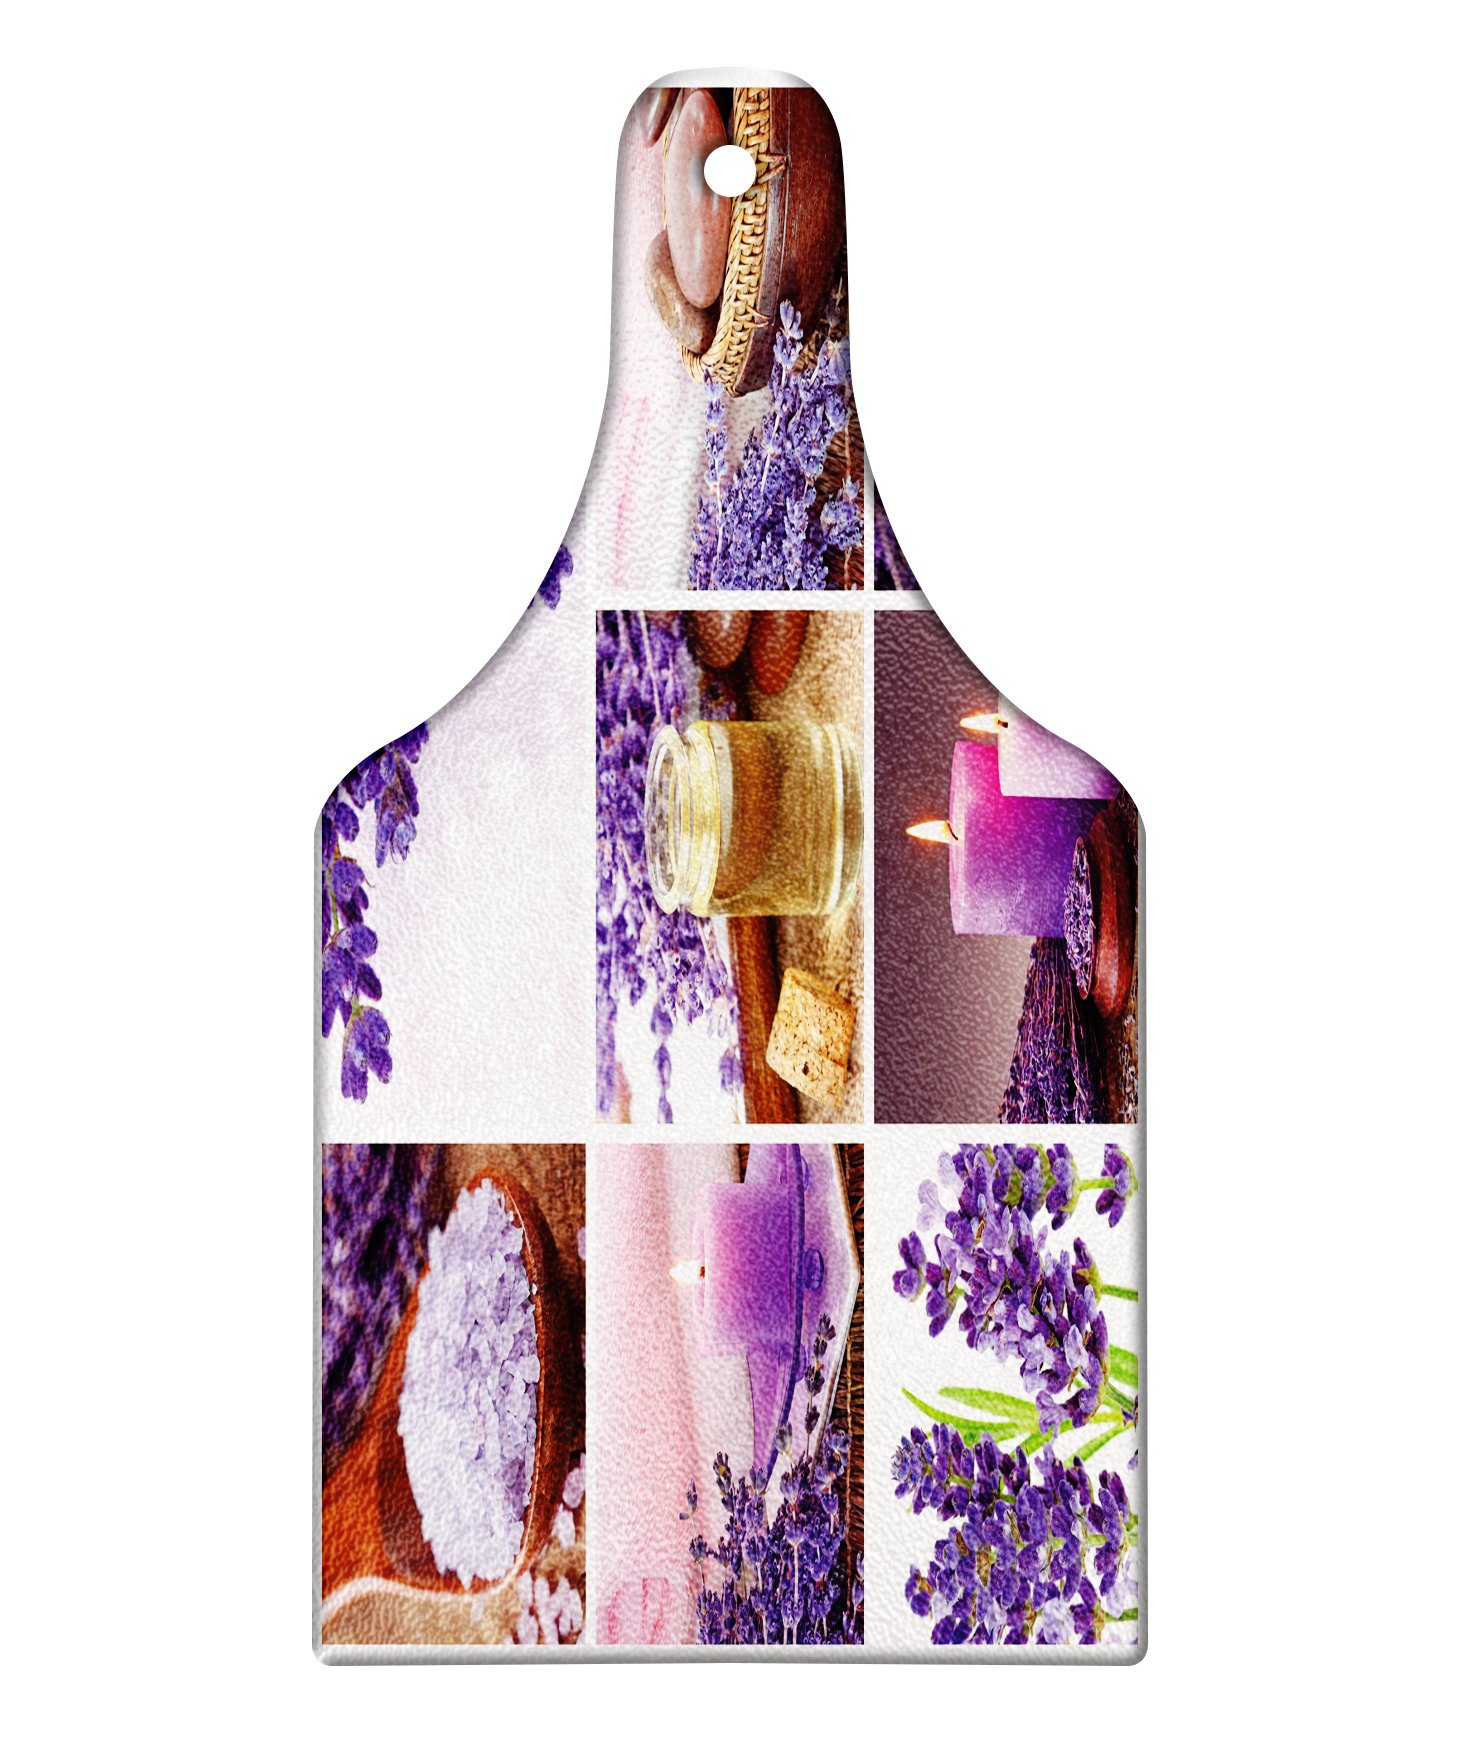 Lunarable Spa Cutting Board, Lavender Garden Alike Themed Relaxing Candles Stones Herbal Salt Elements Image, Decorative Tempered Glass Cutting and Serving Board, Wine Bottle Shape, Purple and White